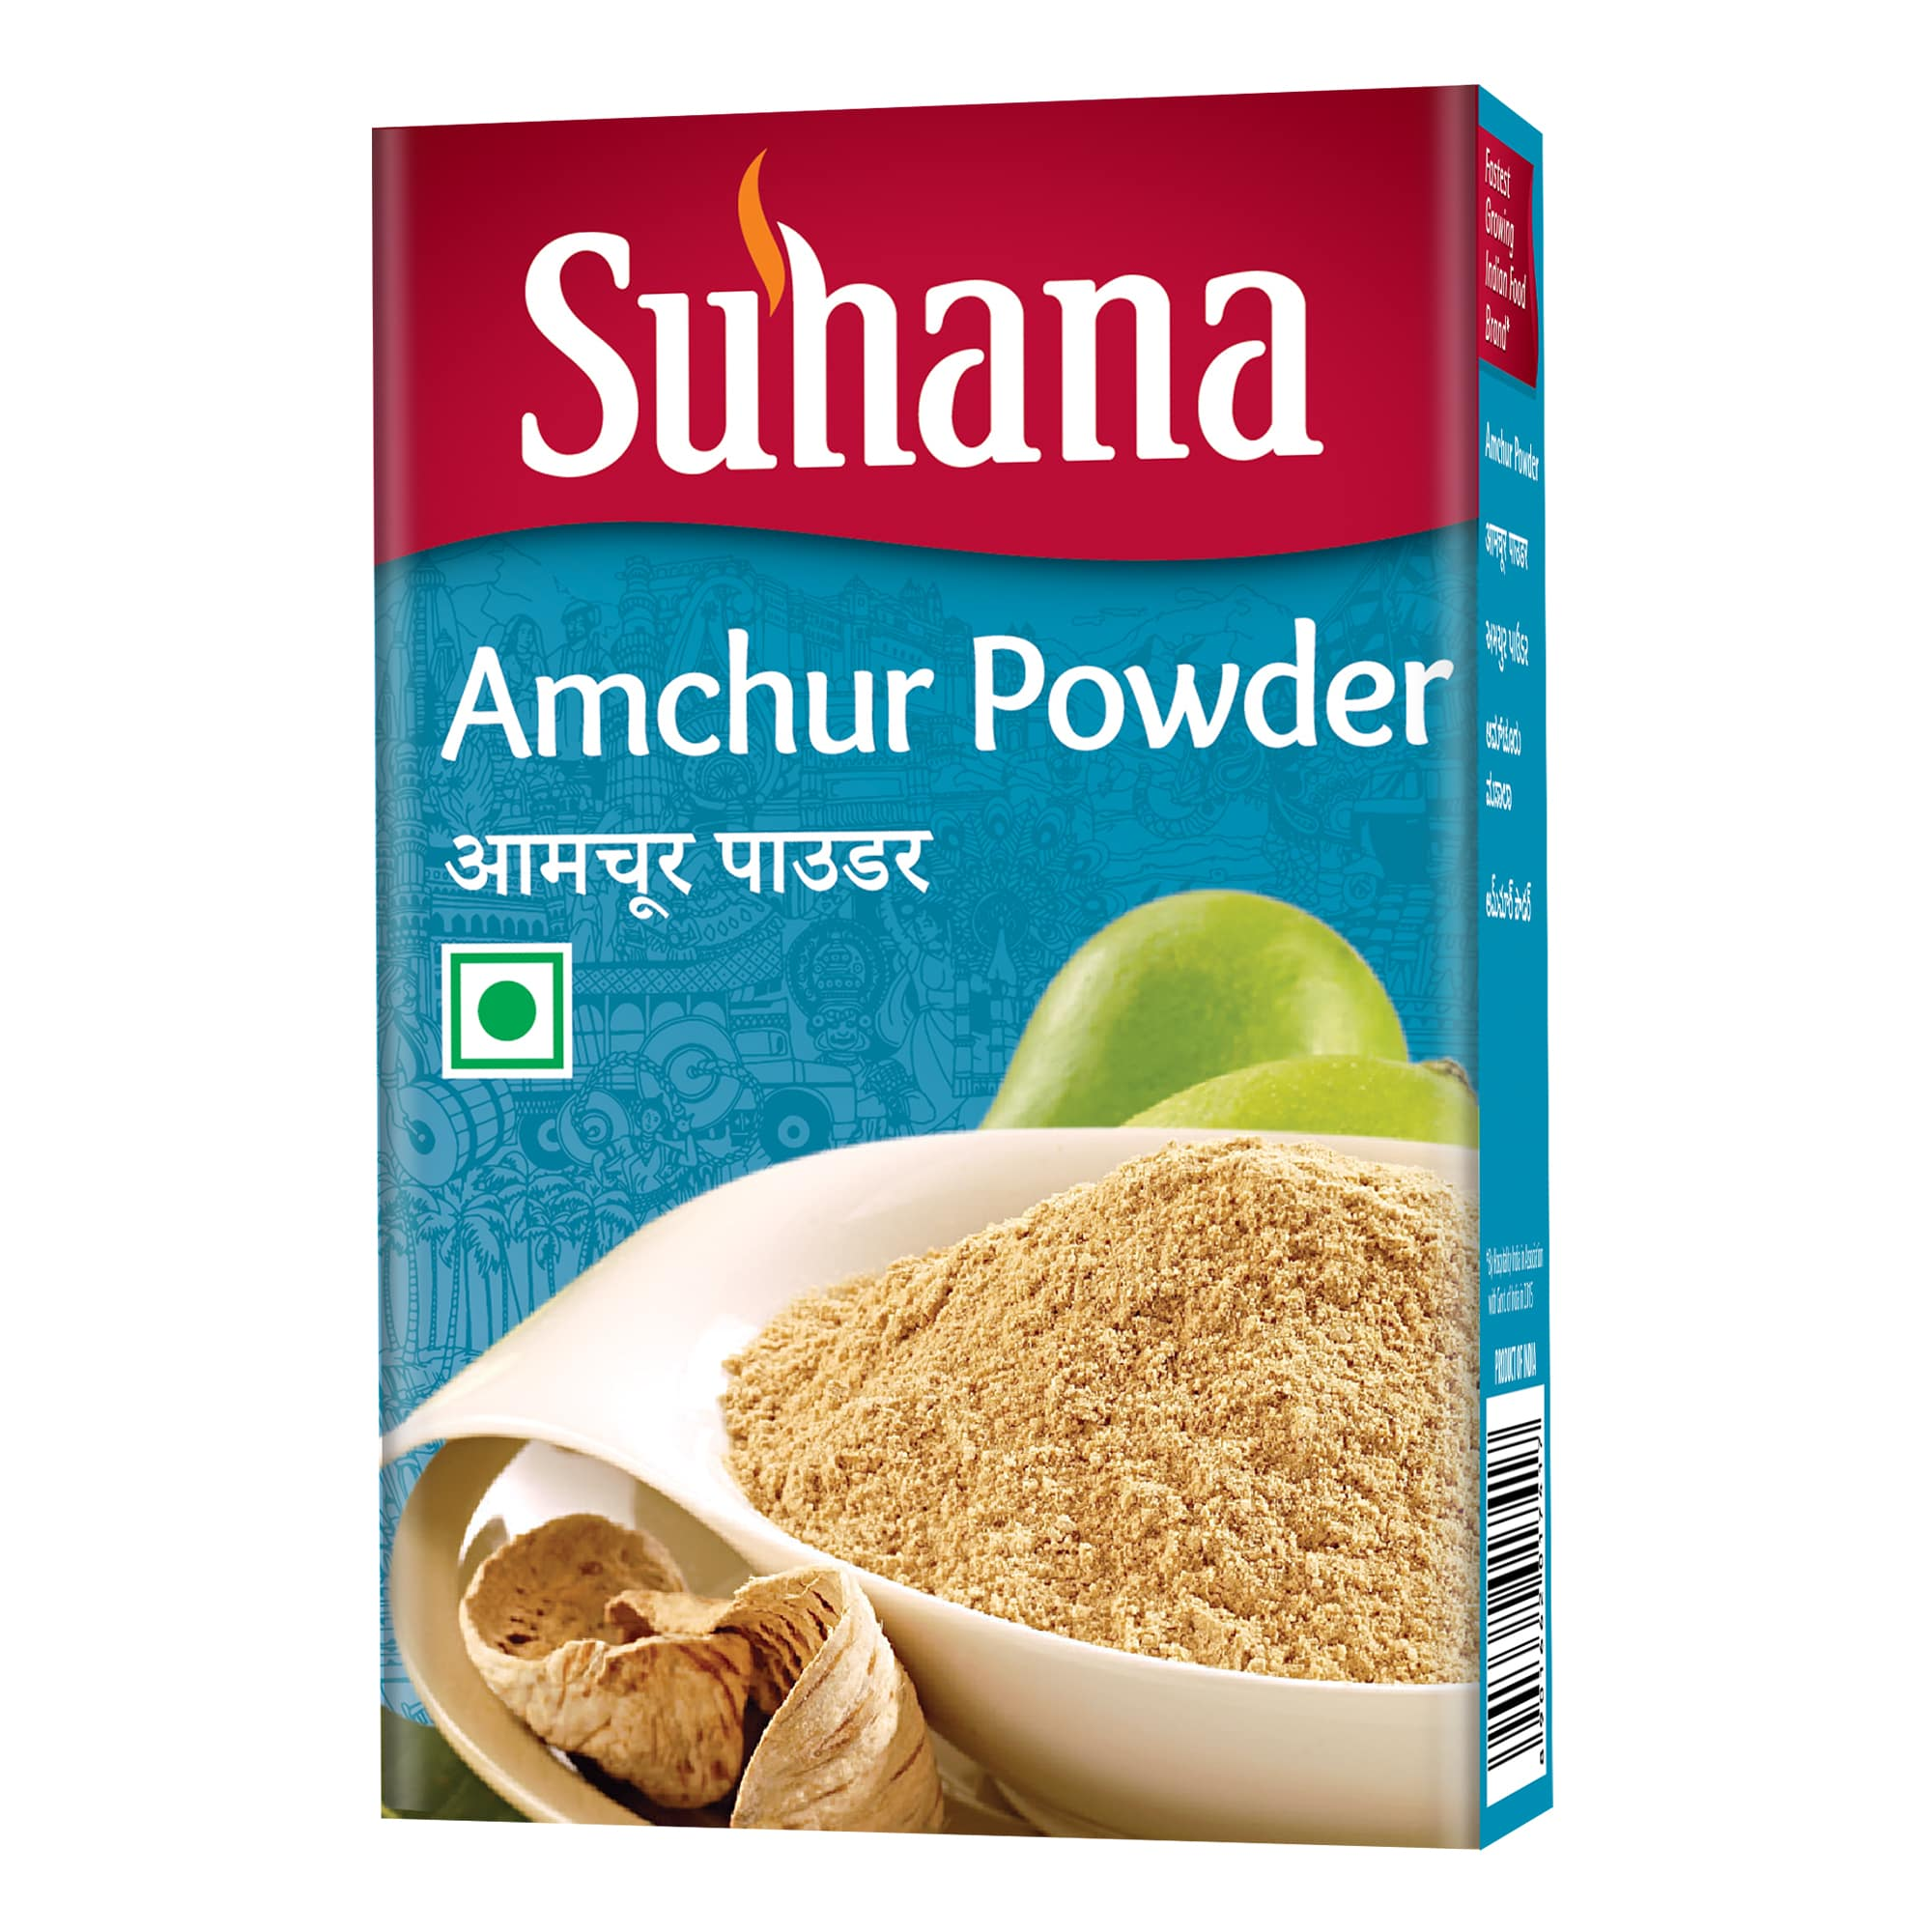 Suhana Amchur Powder 50 g Box